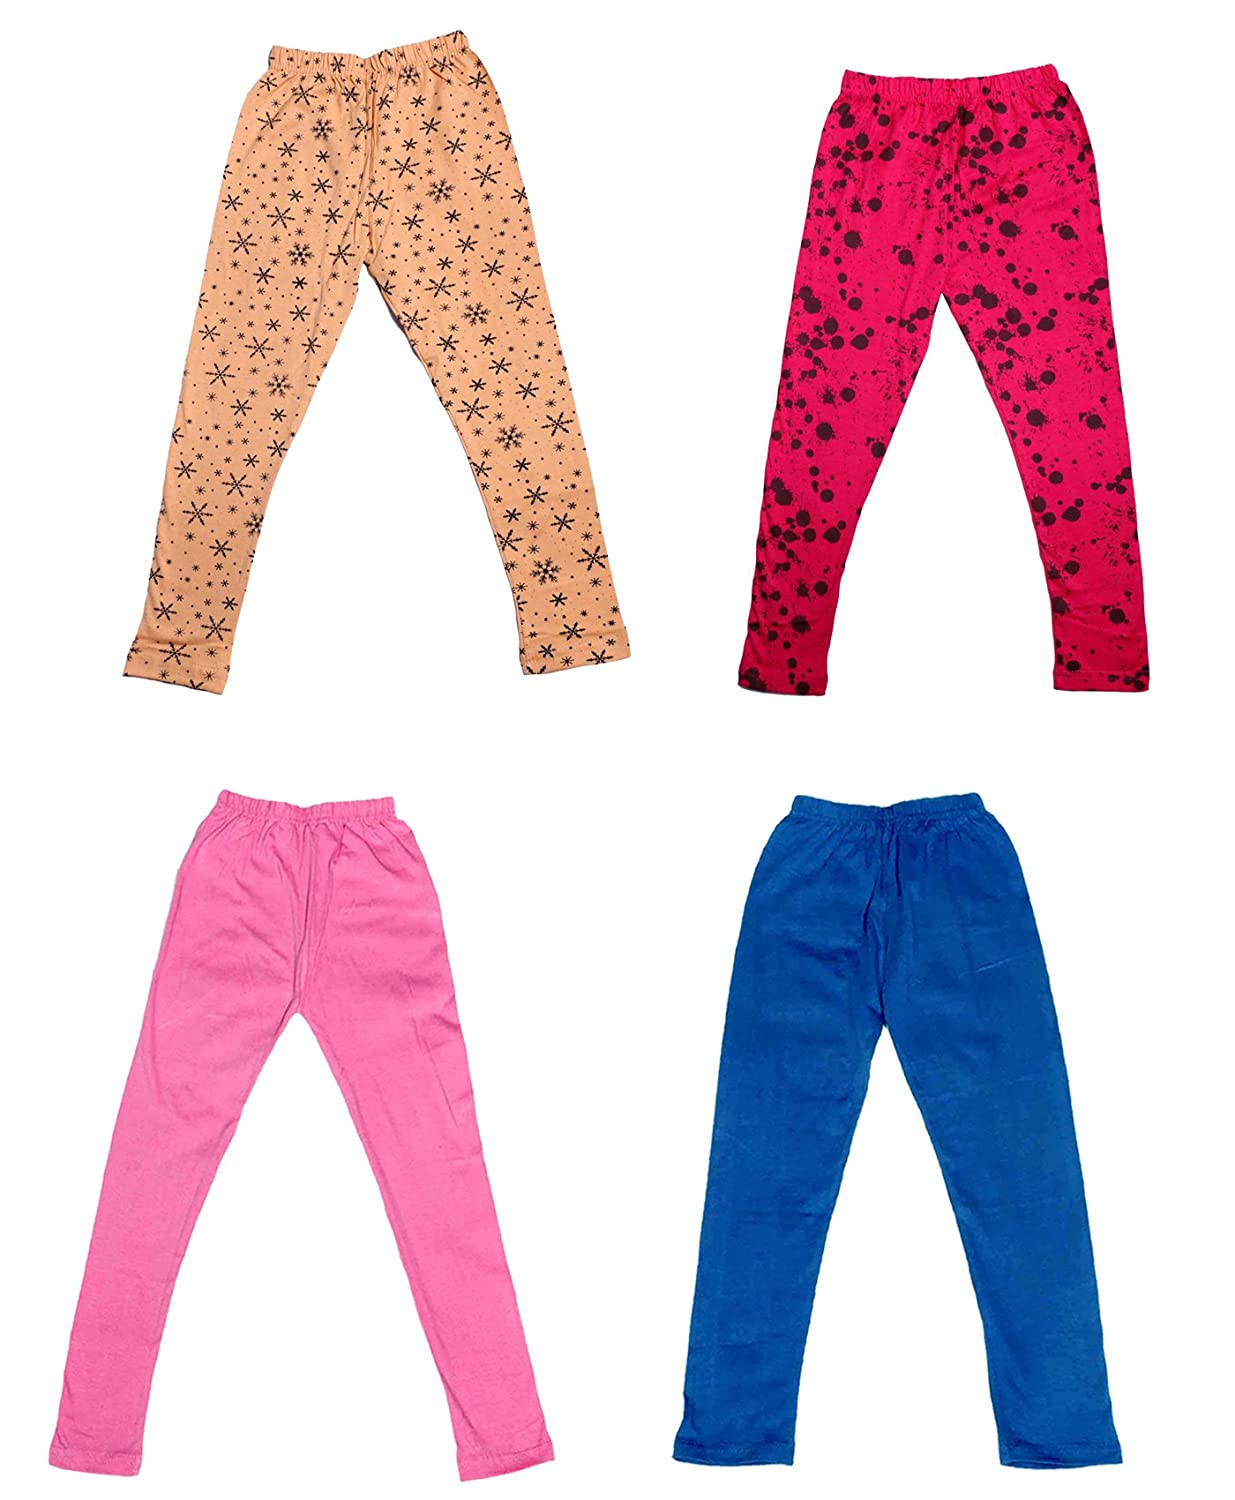 /_Multicolor/_Size-4-5 Years/_71408091920-IW-P4-26 Indistar Girls 2 Cotton Solid Legging Pants Pack Of 4 and 2 Cotton Printed Legging Pants